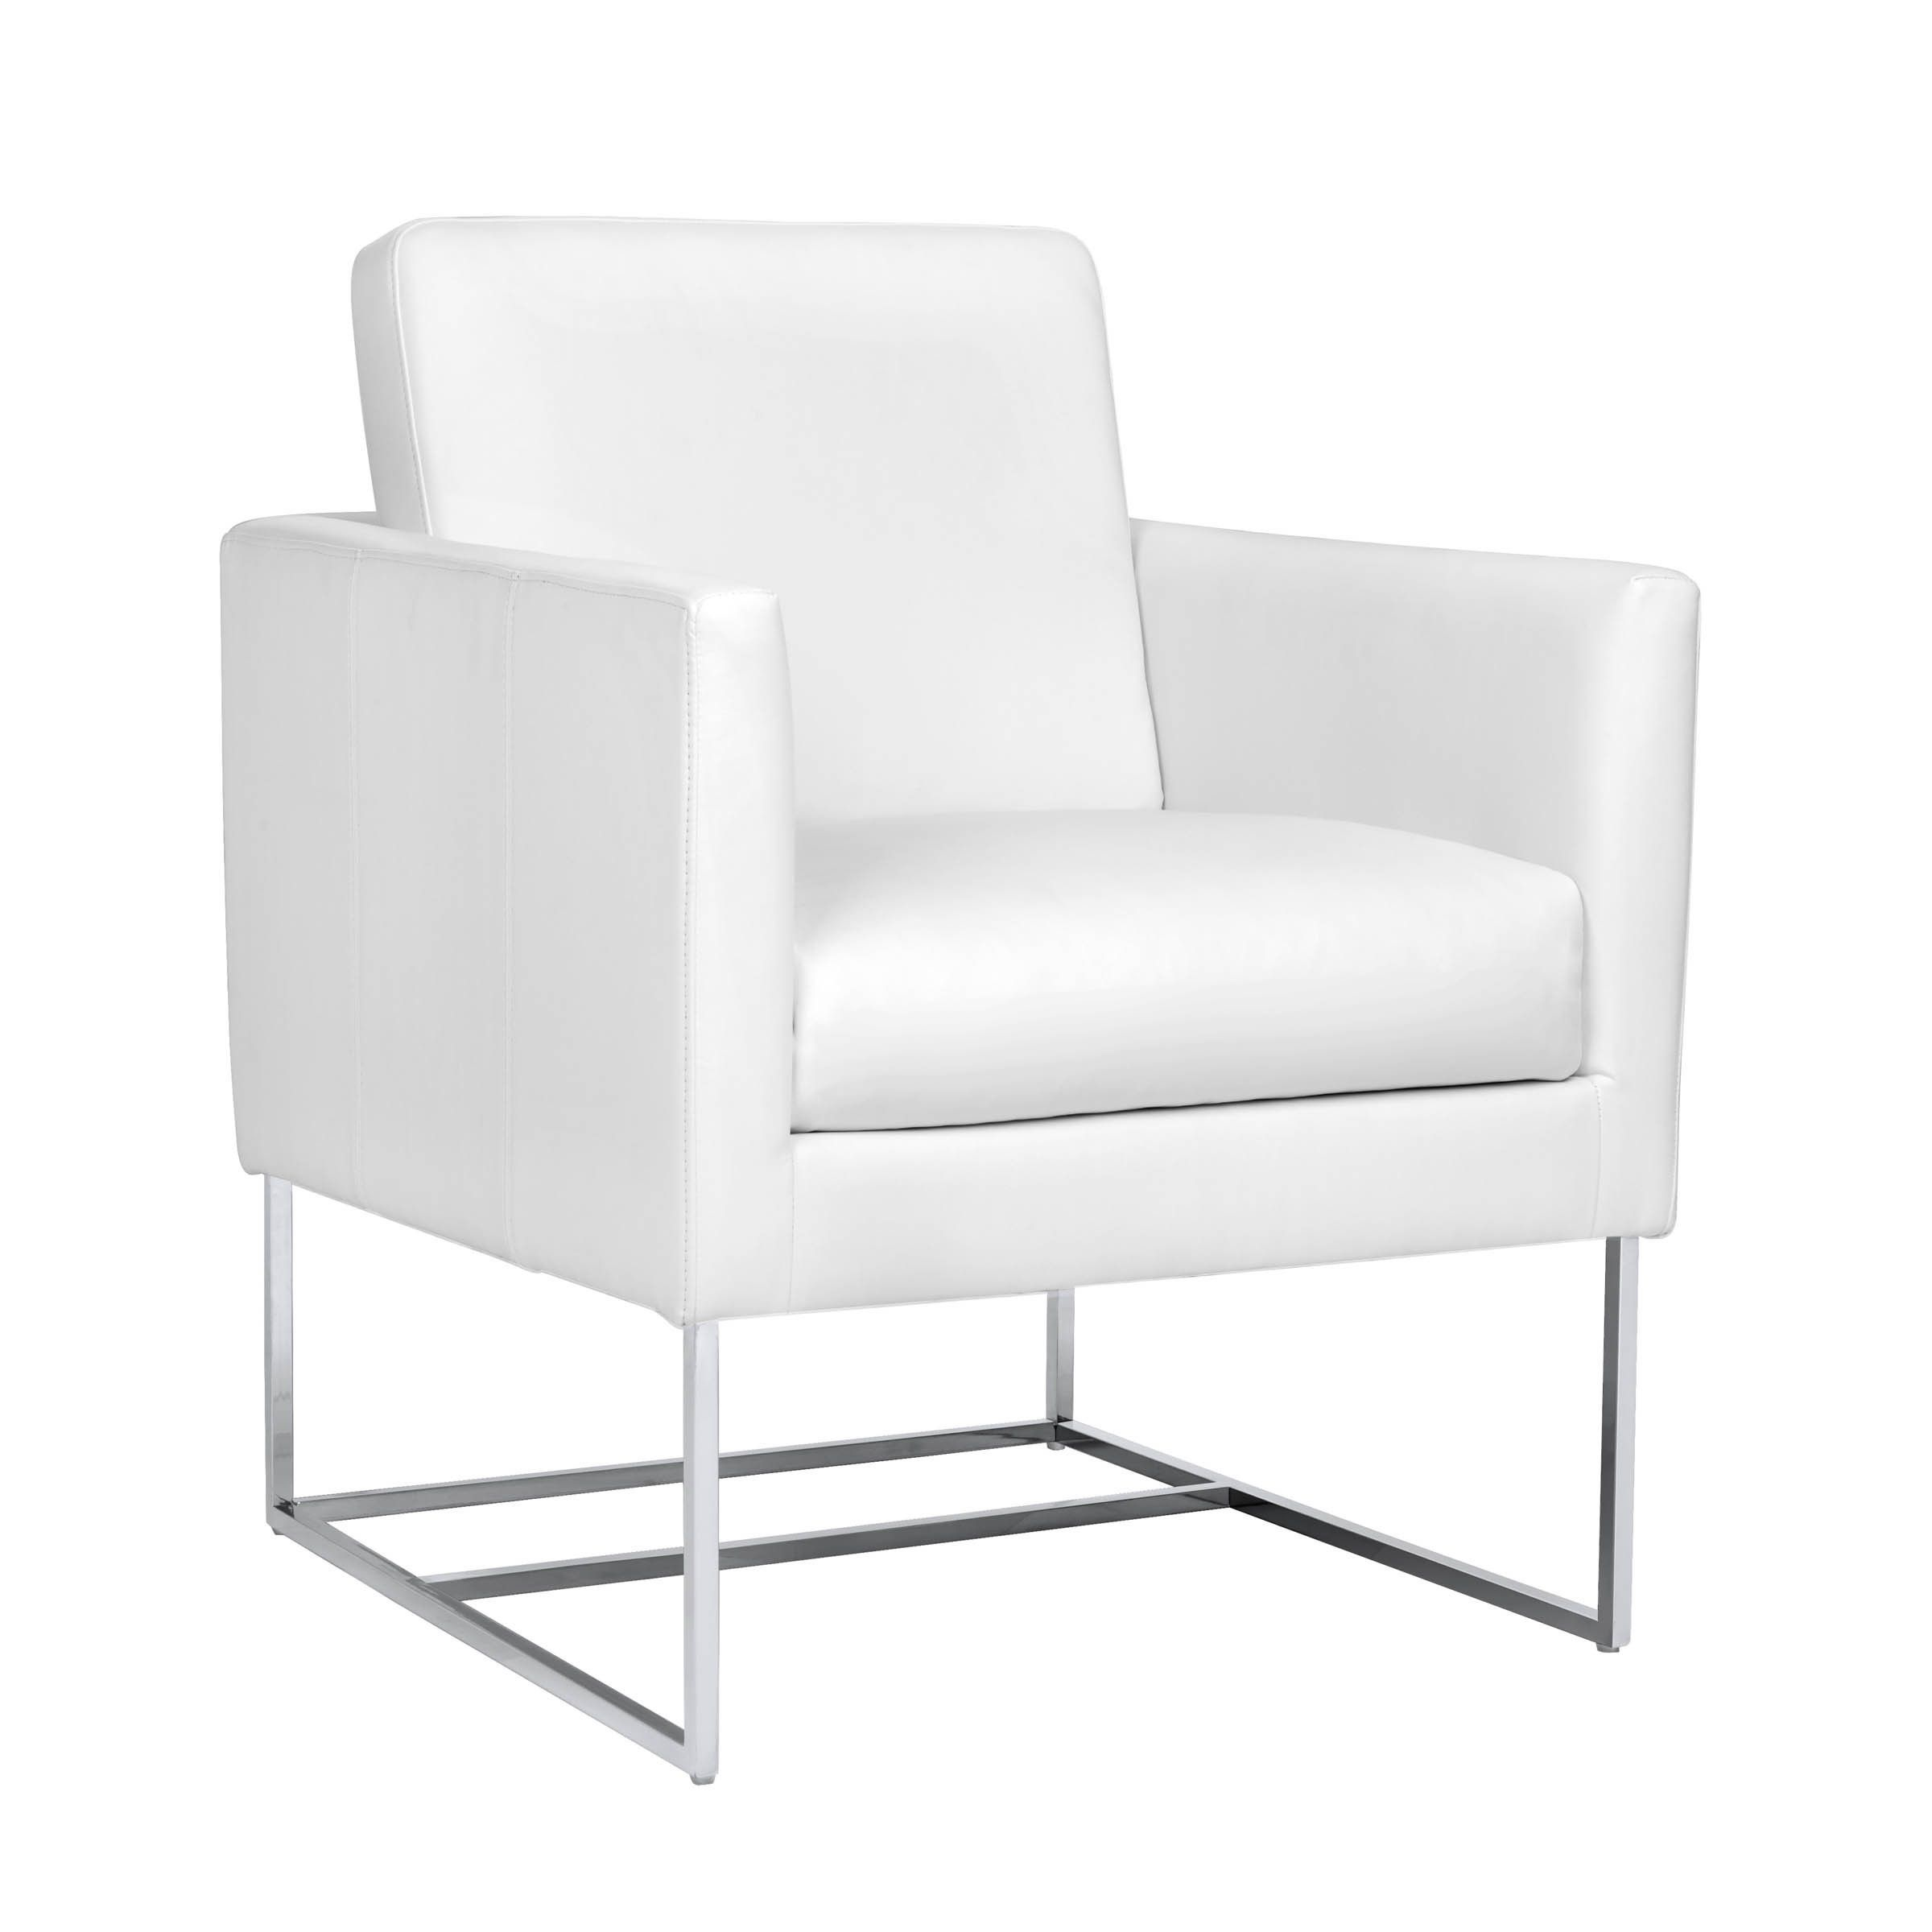 Sunpan \'Club\' Agency Armchair | Products | Pinterest | Living room ...